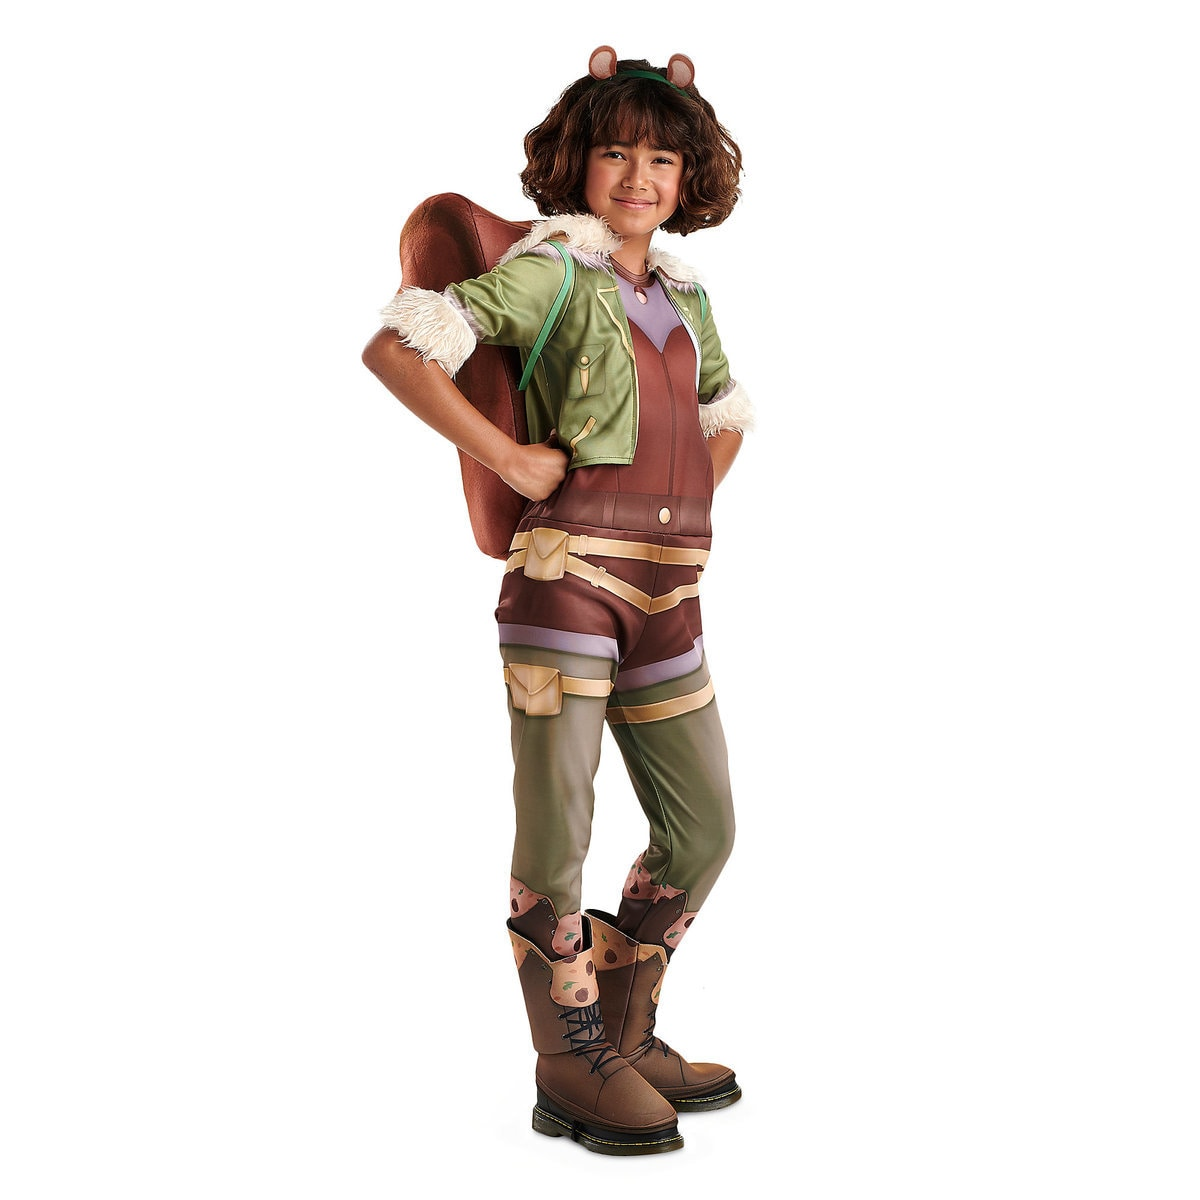 c09cc9532ec25 Product Image of Squirrel Girl Deluxe Costume for Kids by Rubies # 1